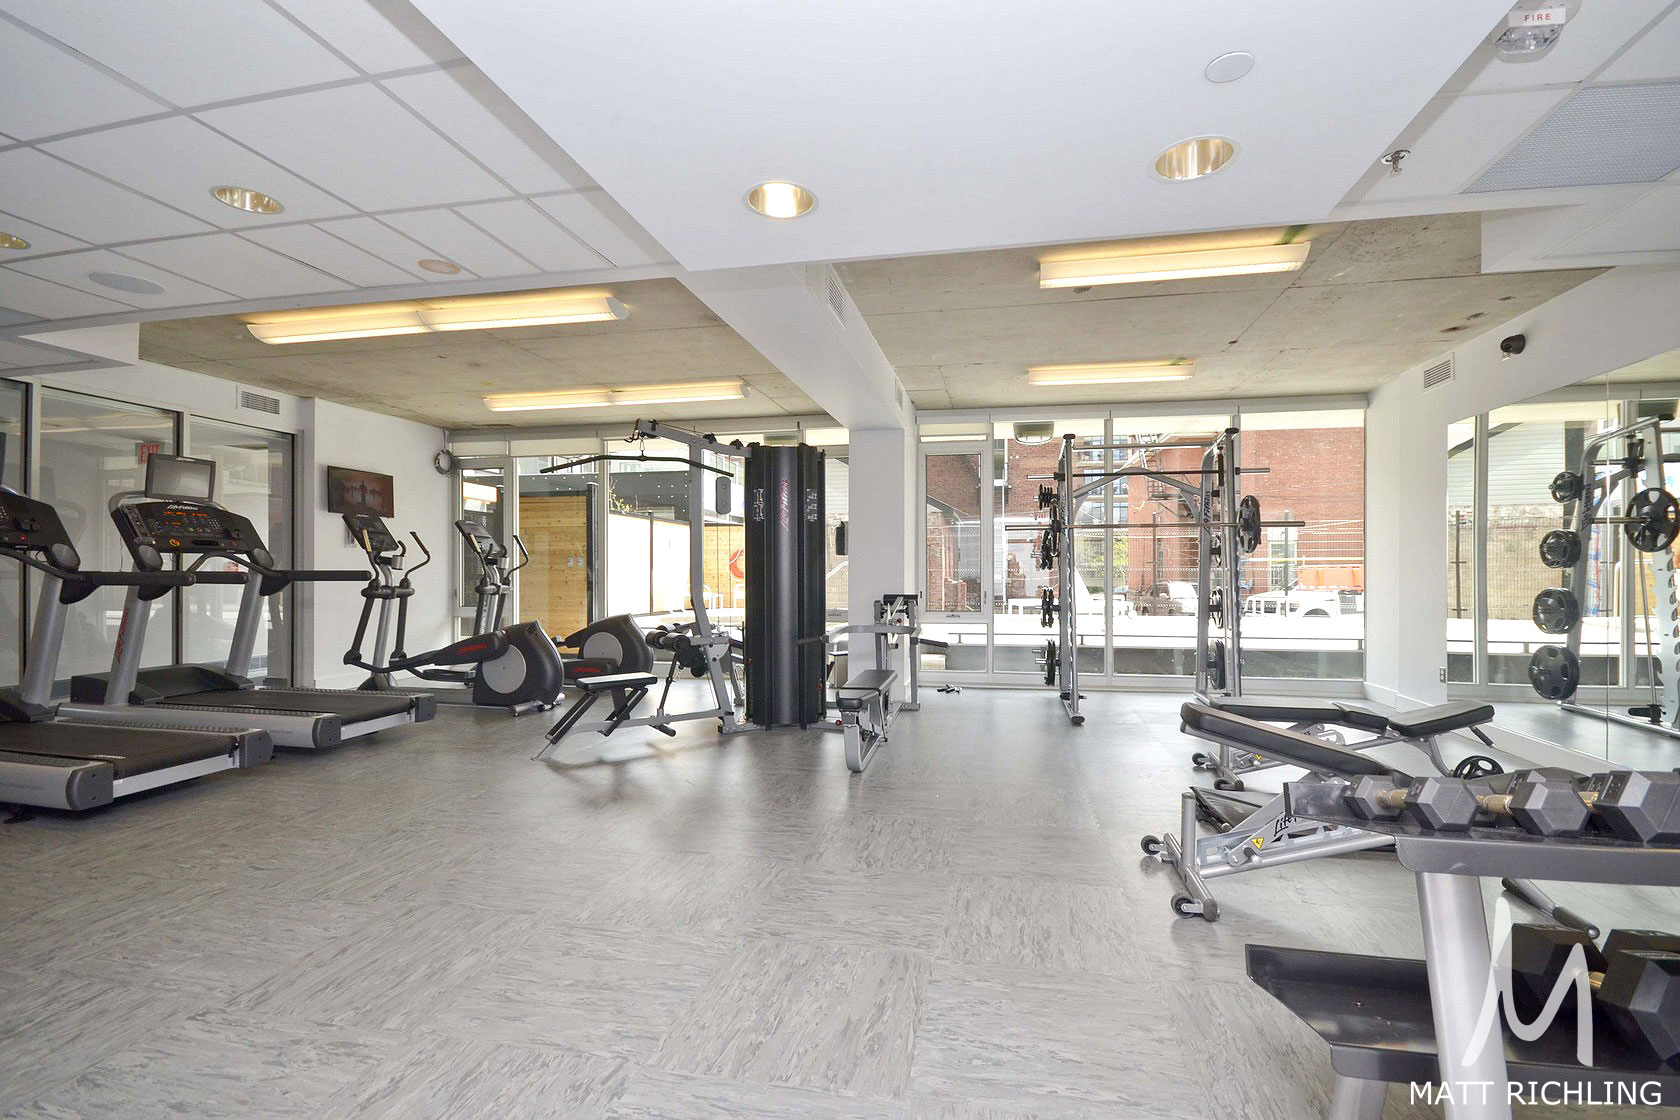 SOHO-gym-Matt-Richling.jpg